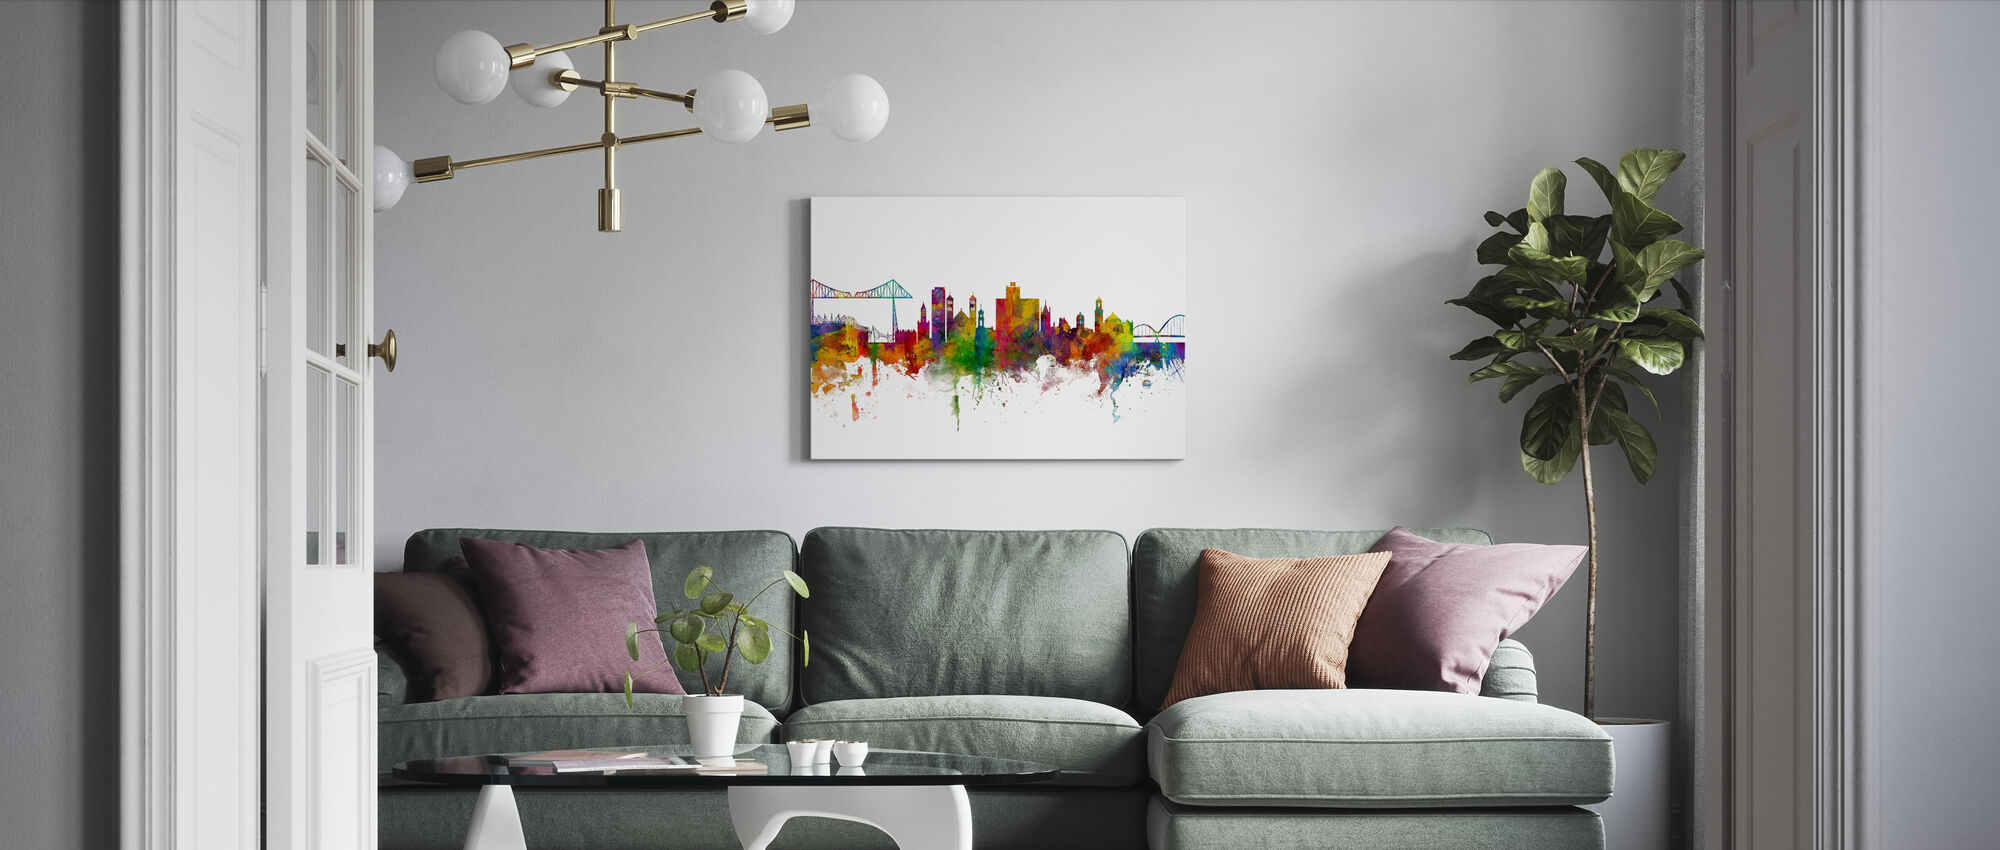 Middlesbrough Skyline - Canvas print - Living Room